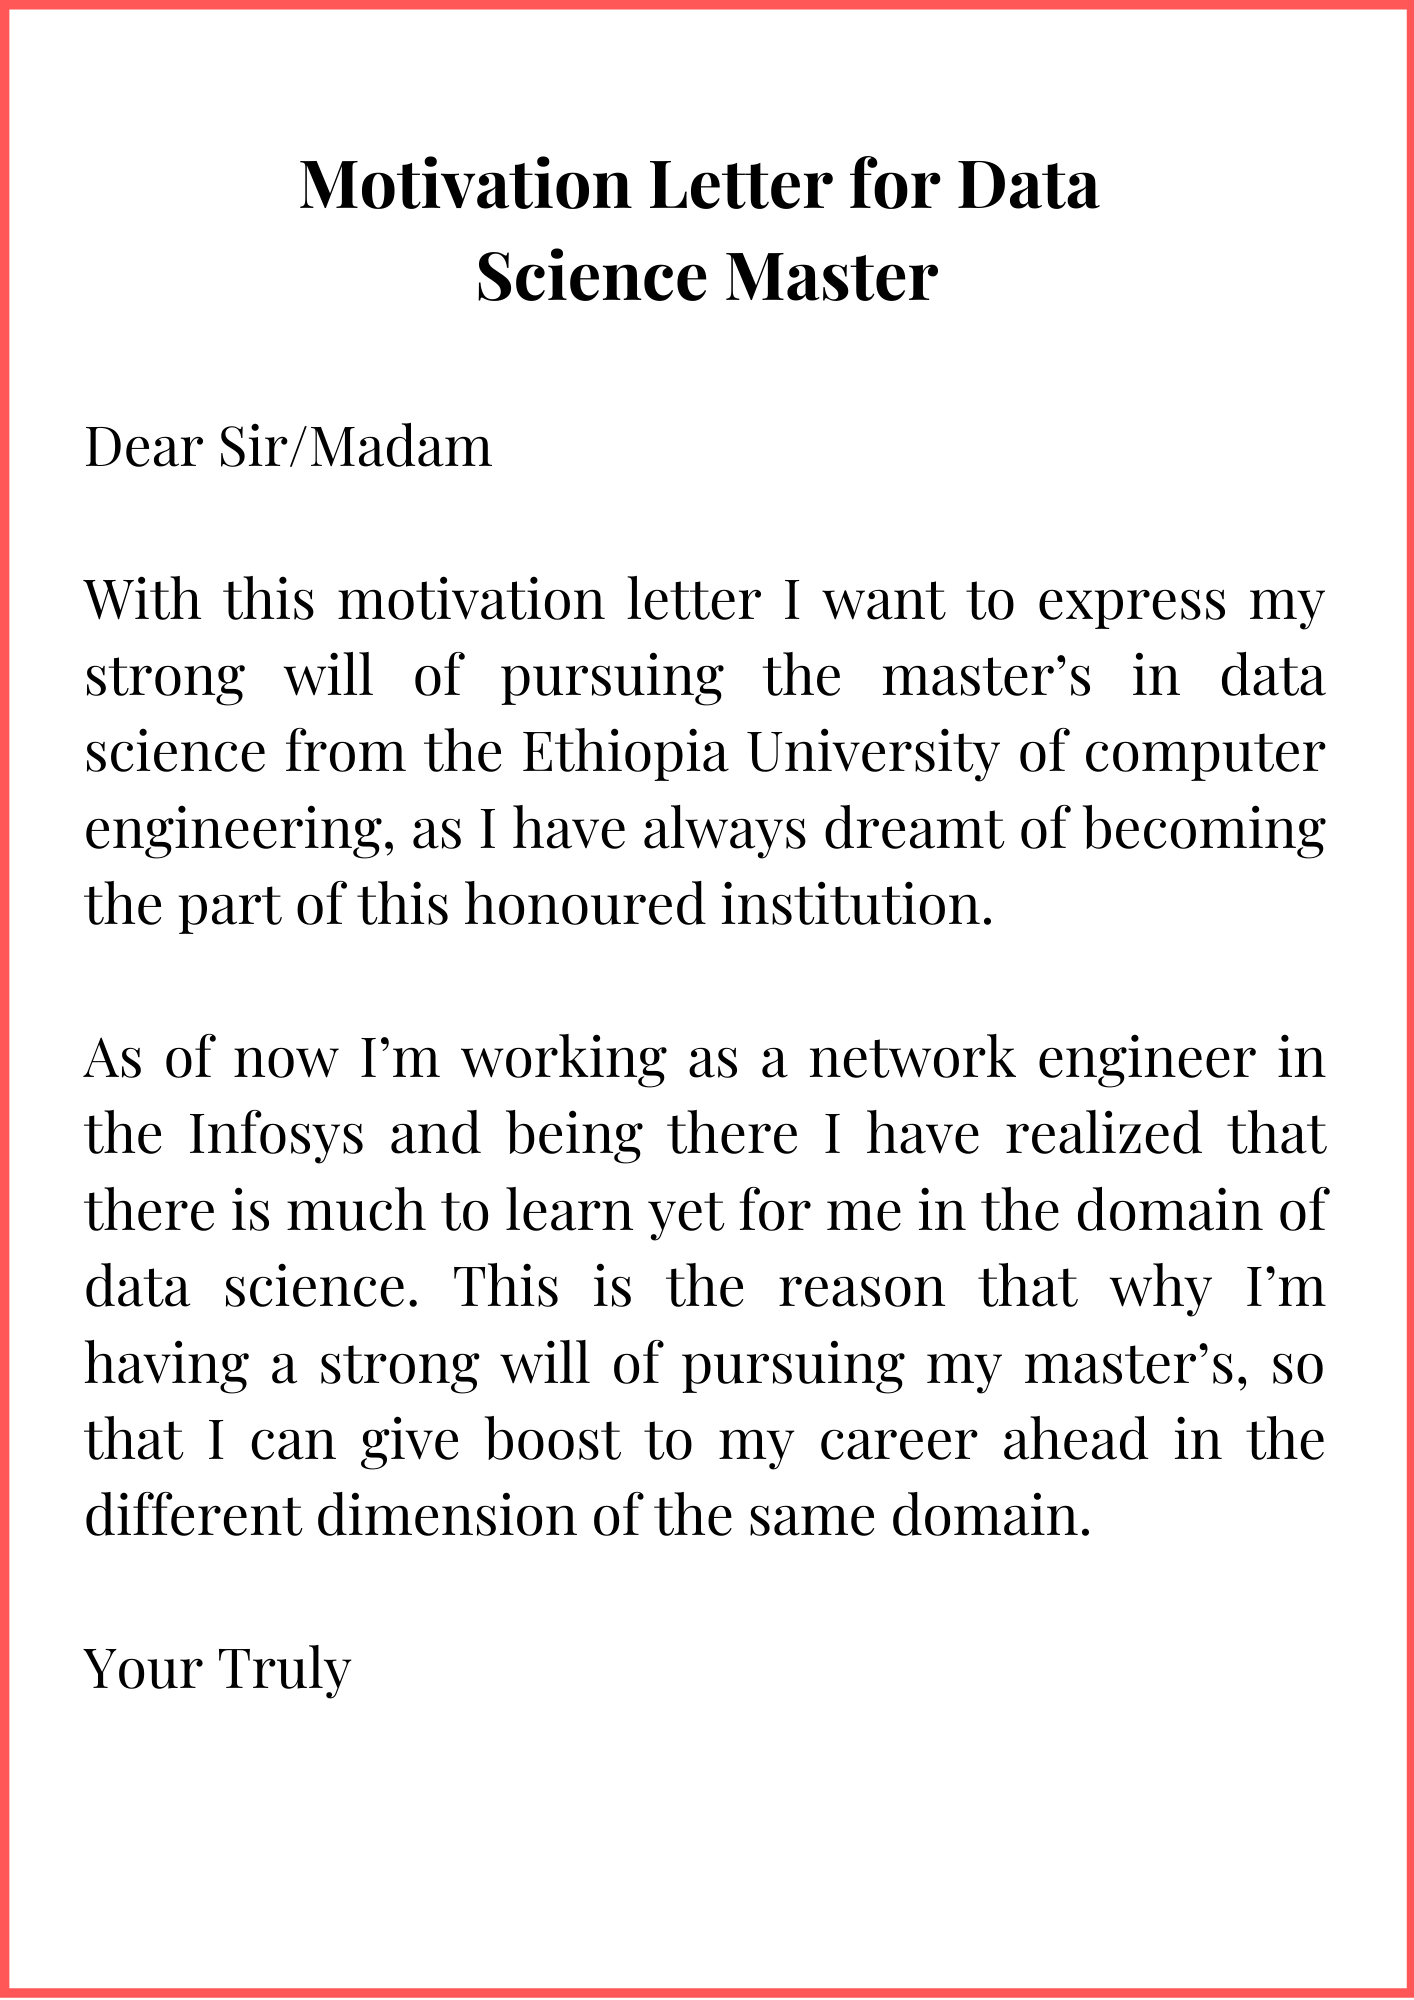 Motivation Letter for Masters Degree in Data Science | Top ...